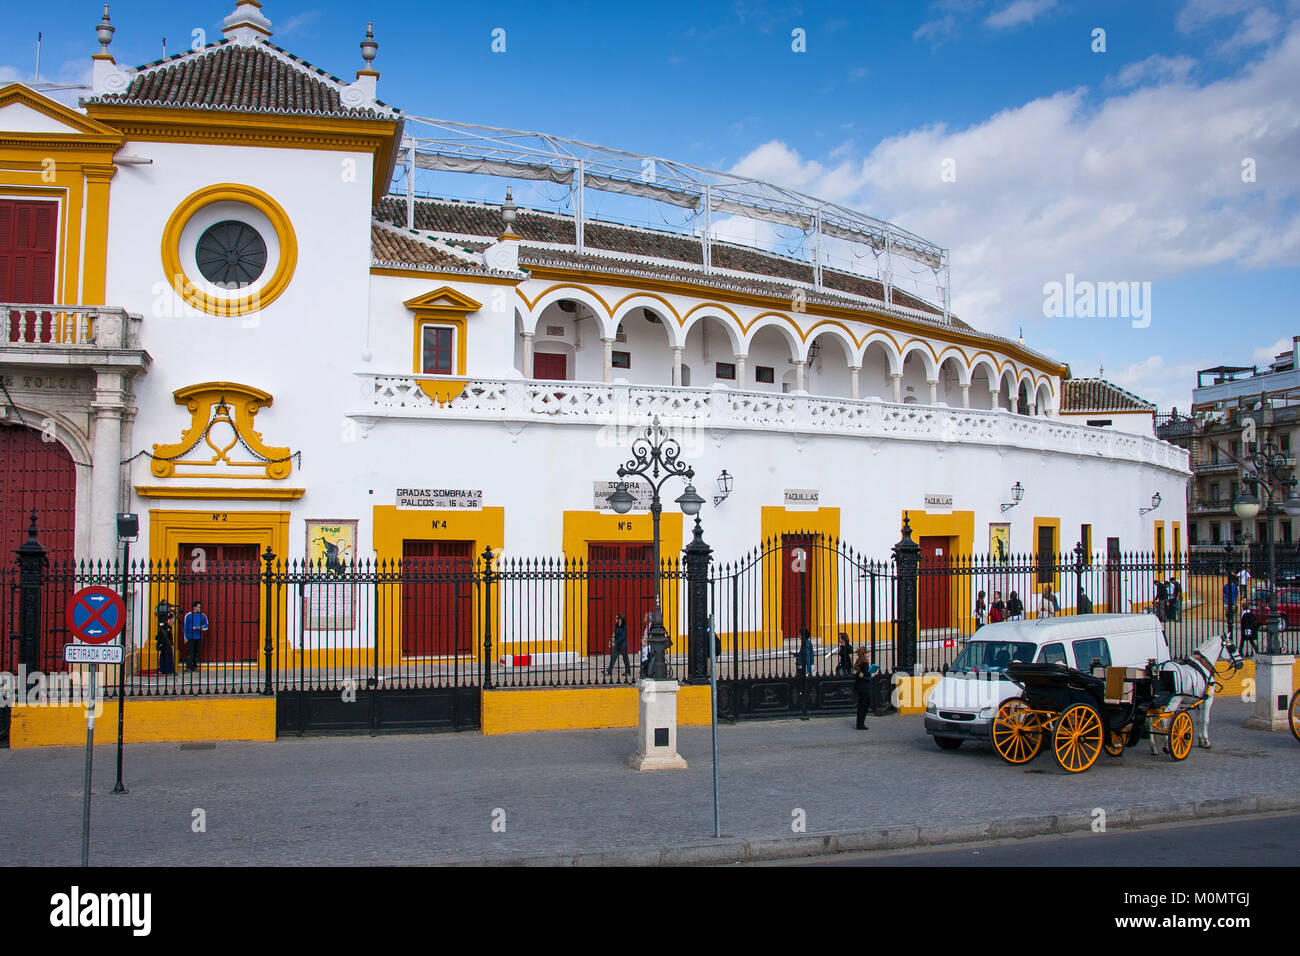 Seville, Andalusia, Spain -  March 27, 2008: bullring (plaza de toros) is called the Plaza de Toros de la Real Maestranza - Stock Image